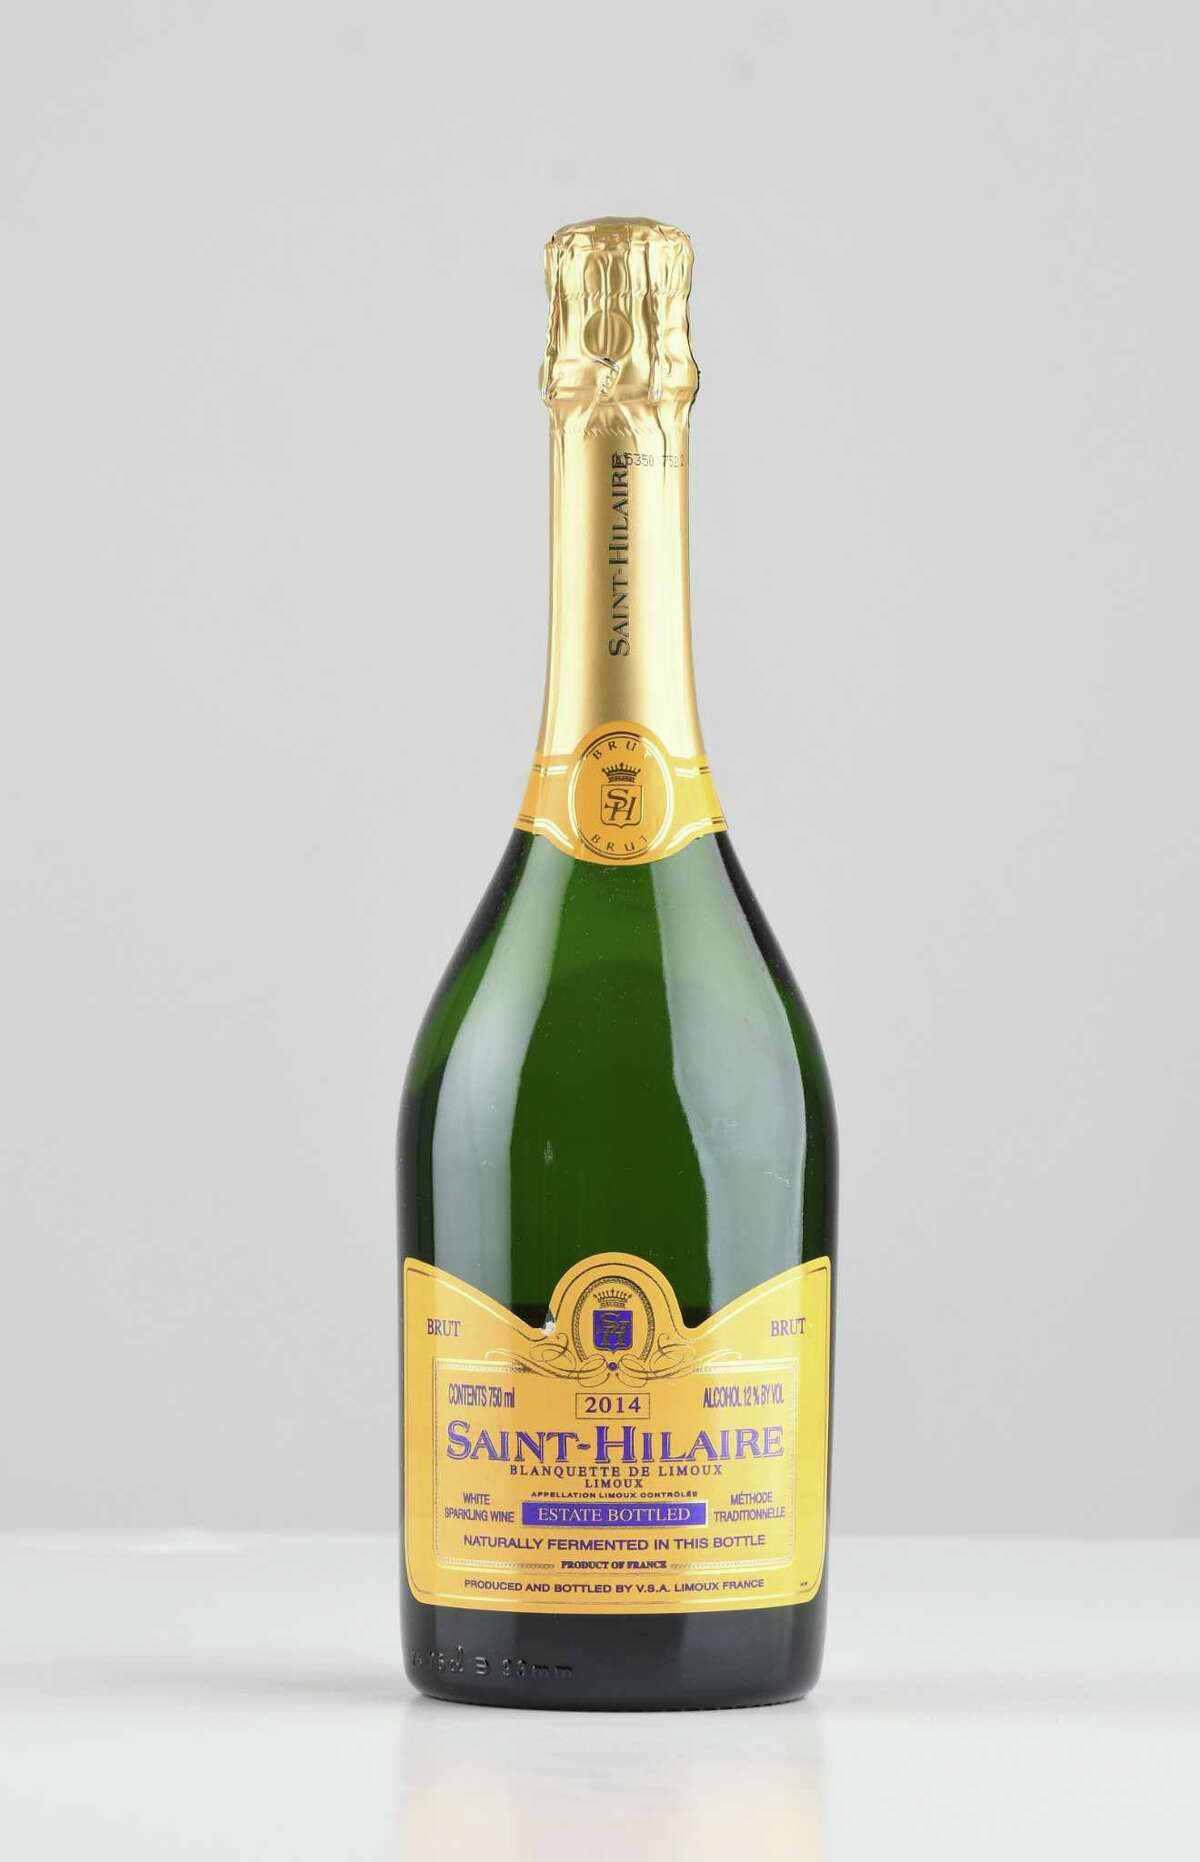 Saint Hilaire sparkling on Thursday, April 26, 2018, at the Times Union in Colonie, N.Y. (Will Waldron/Times Union)